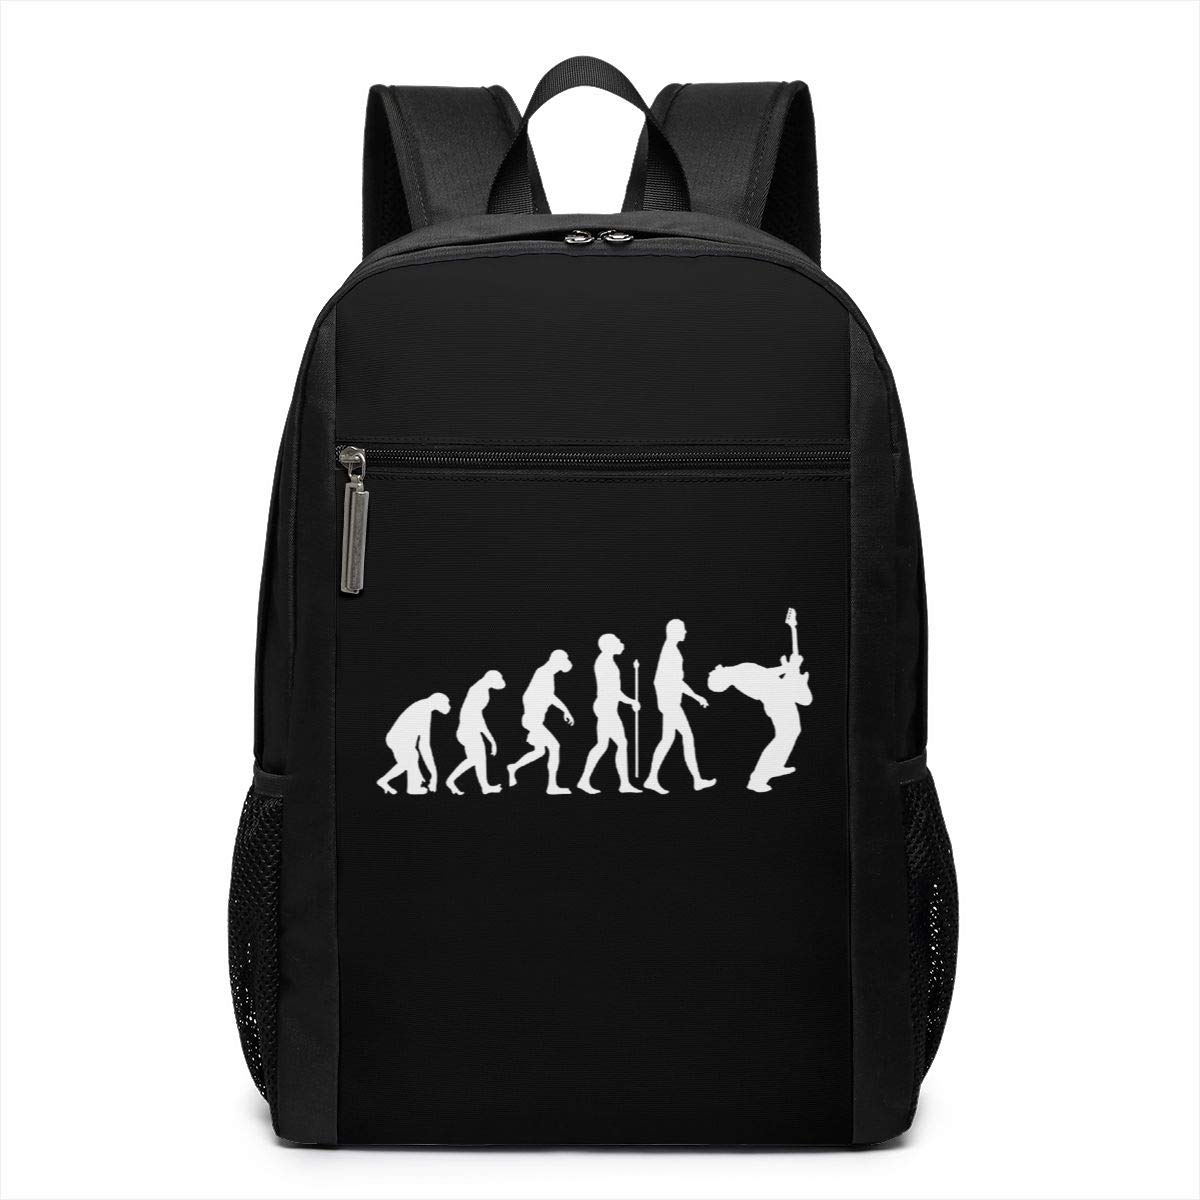 Classic-Backpack-Evolution-Of-A-Rock-Guitarist-Durable-Backpack-17-Inch-For-Women--Men